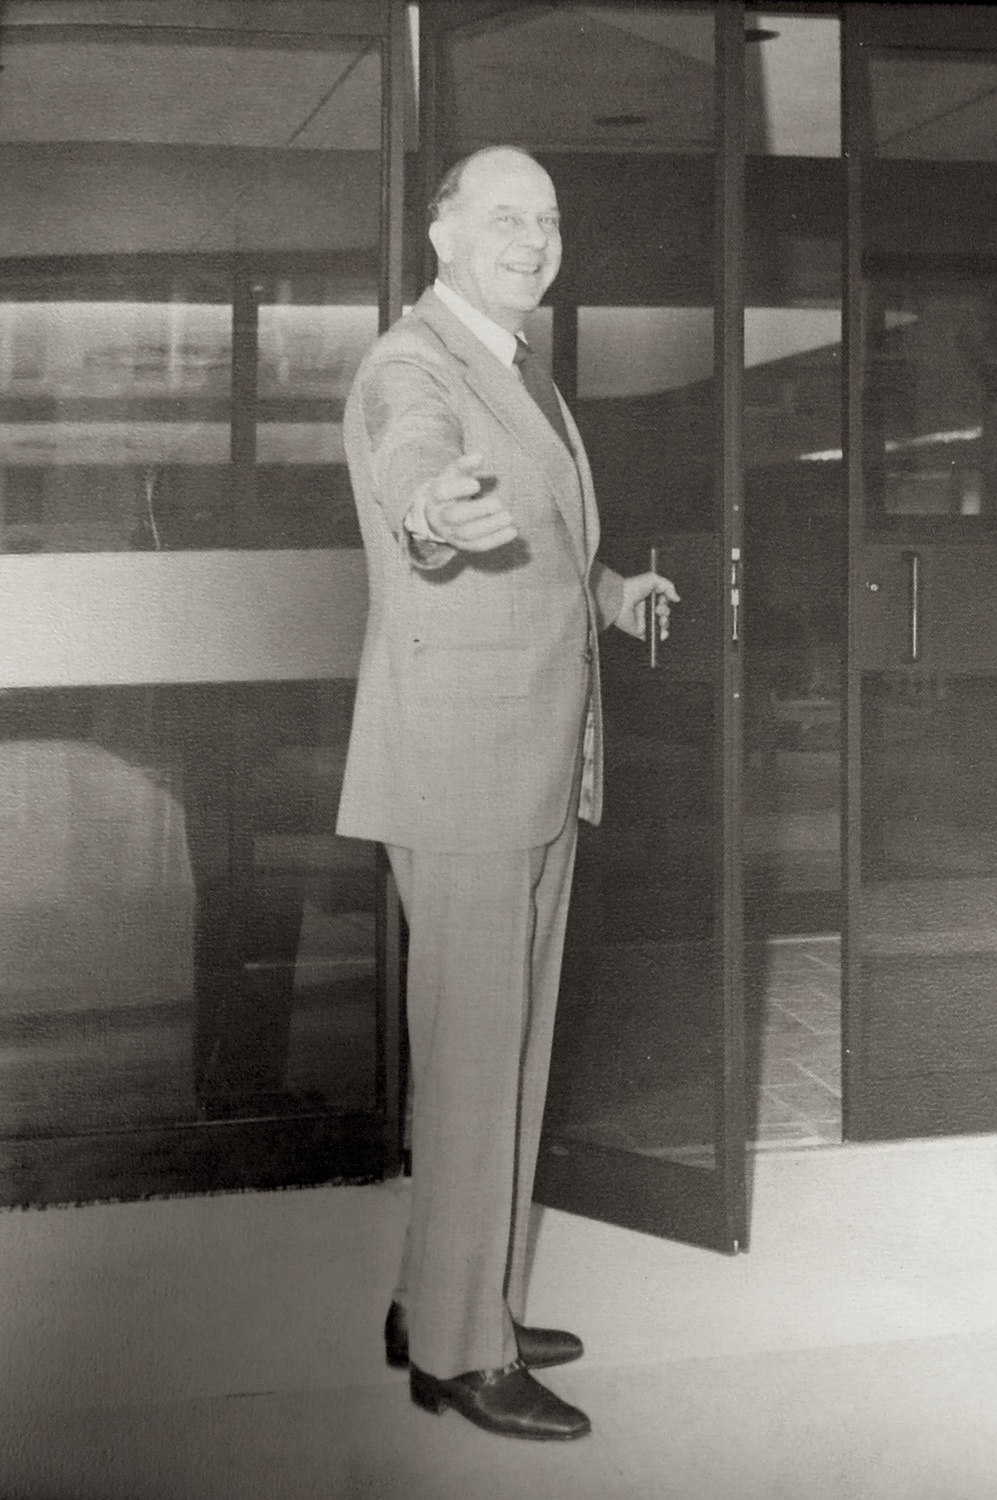 Harry Kuhner, president of Security Central National Bank, opening the door to the newly relocated bank headquarters on the Esplanade, Portsmouth, Ohio, c. 1976.